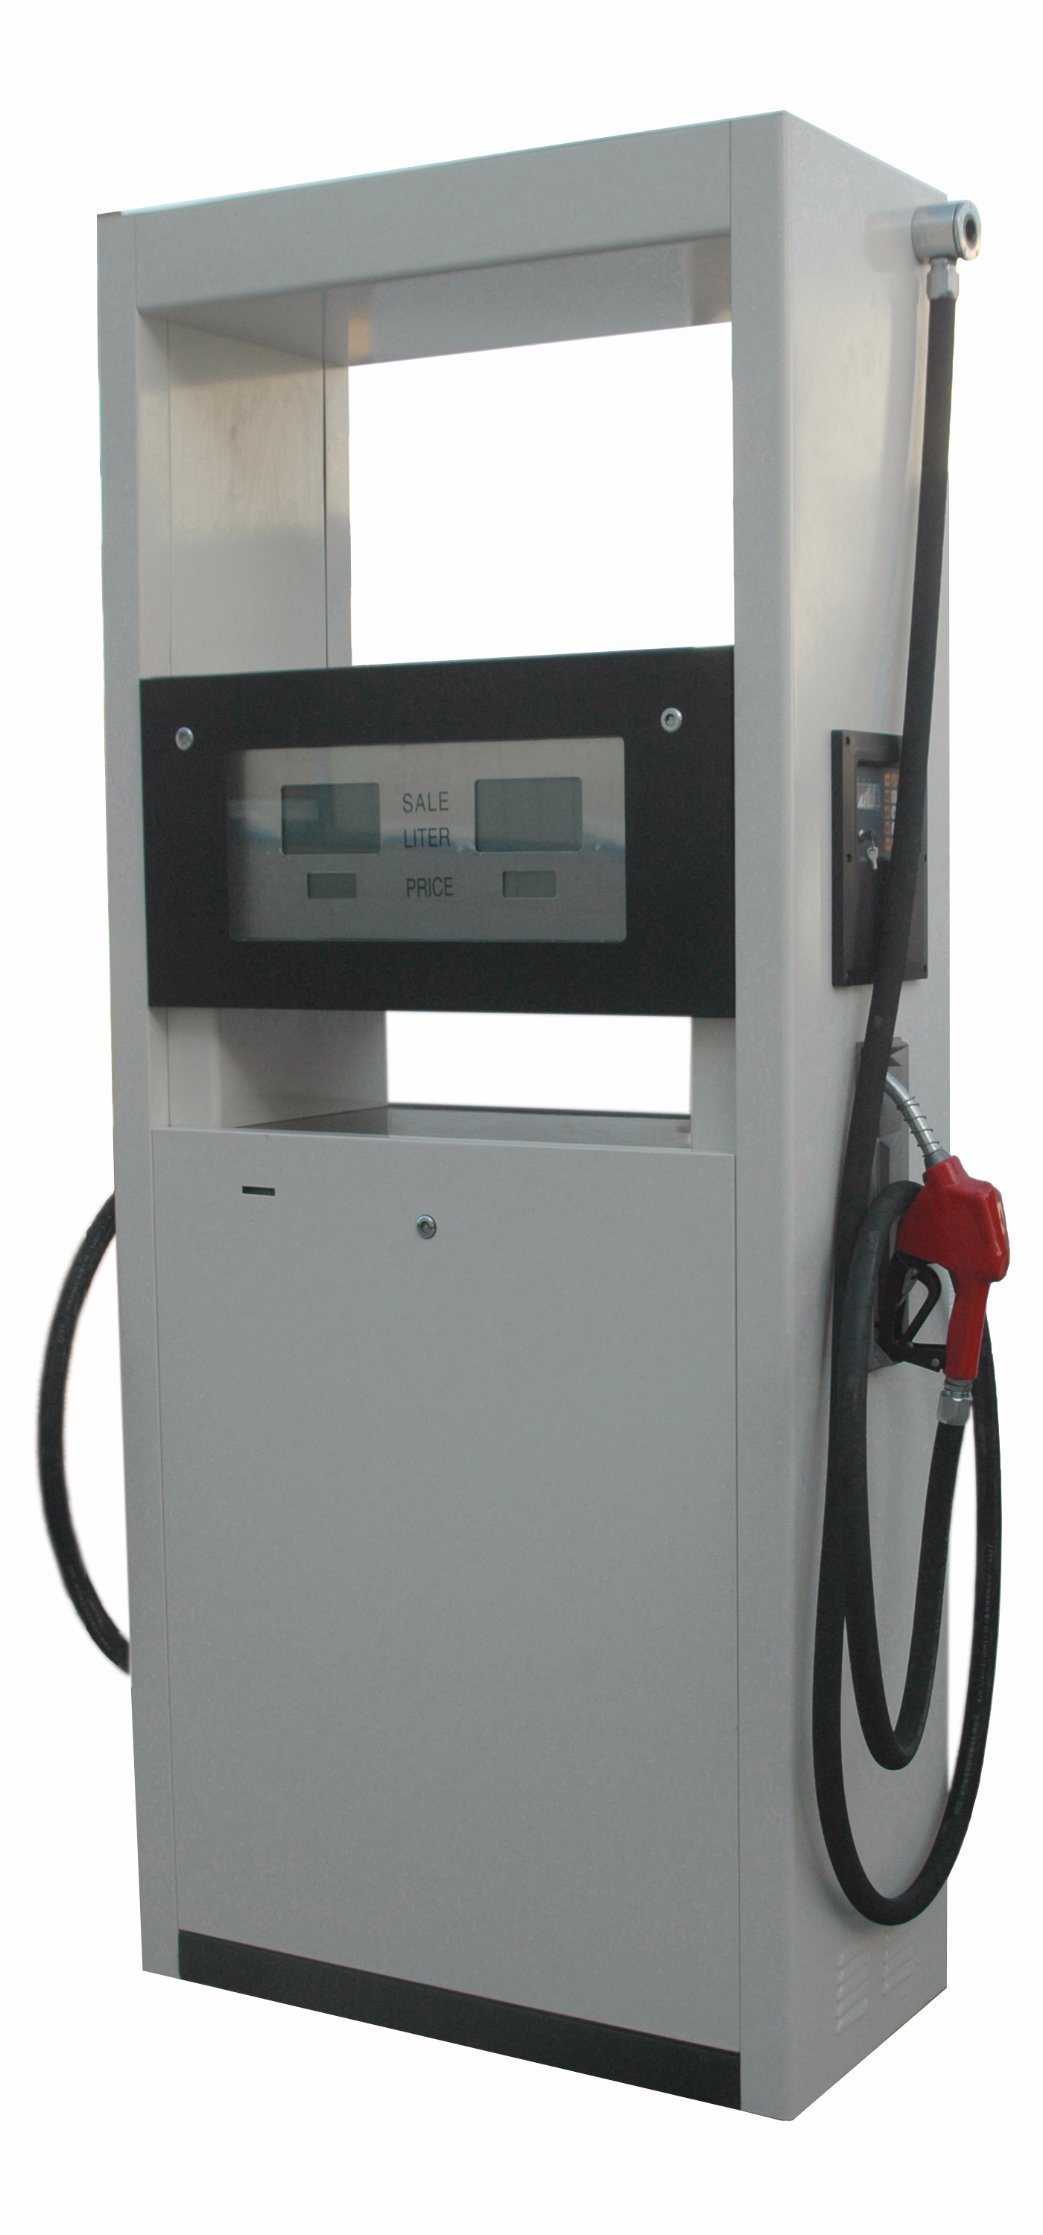 Two Nozzle One Pump Oil Station Fuel Dispenser with LED